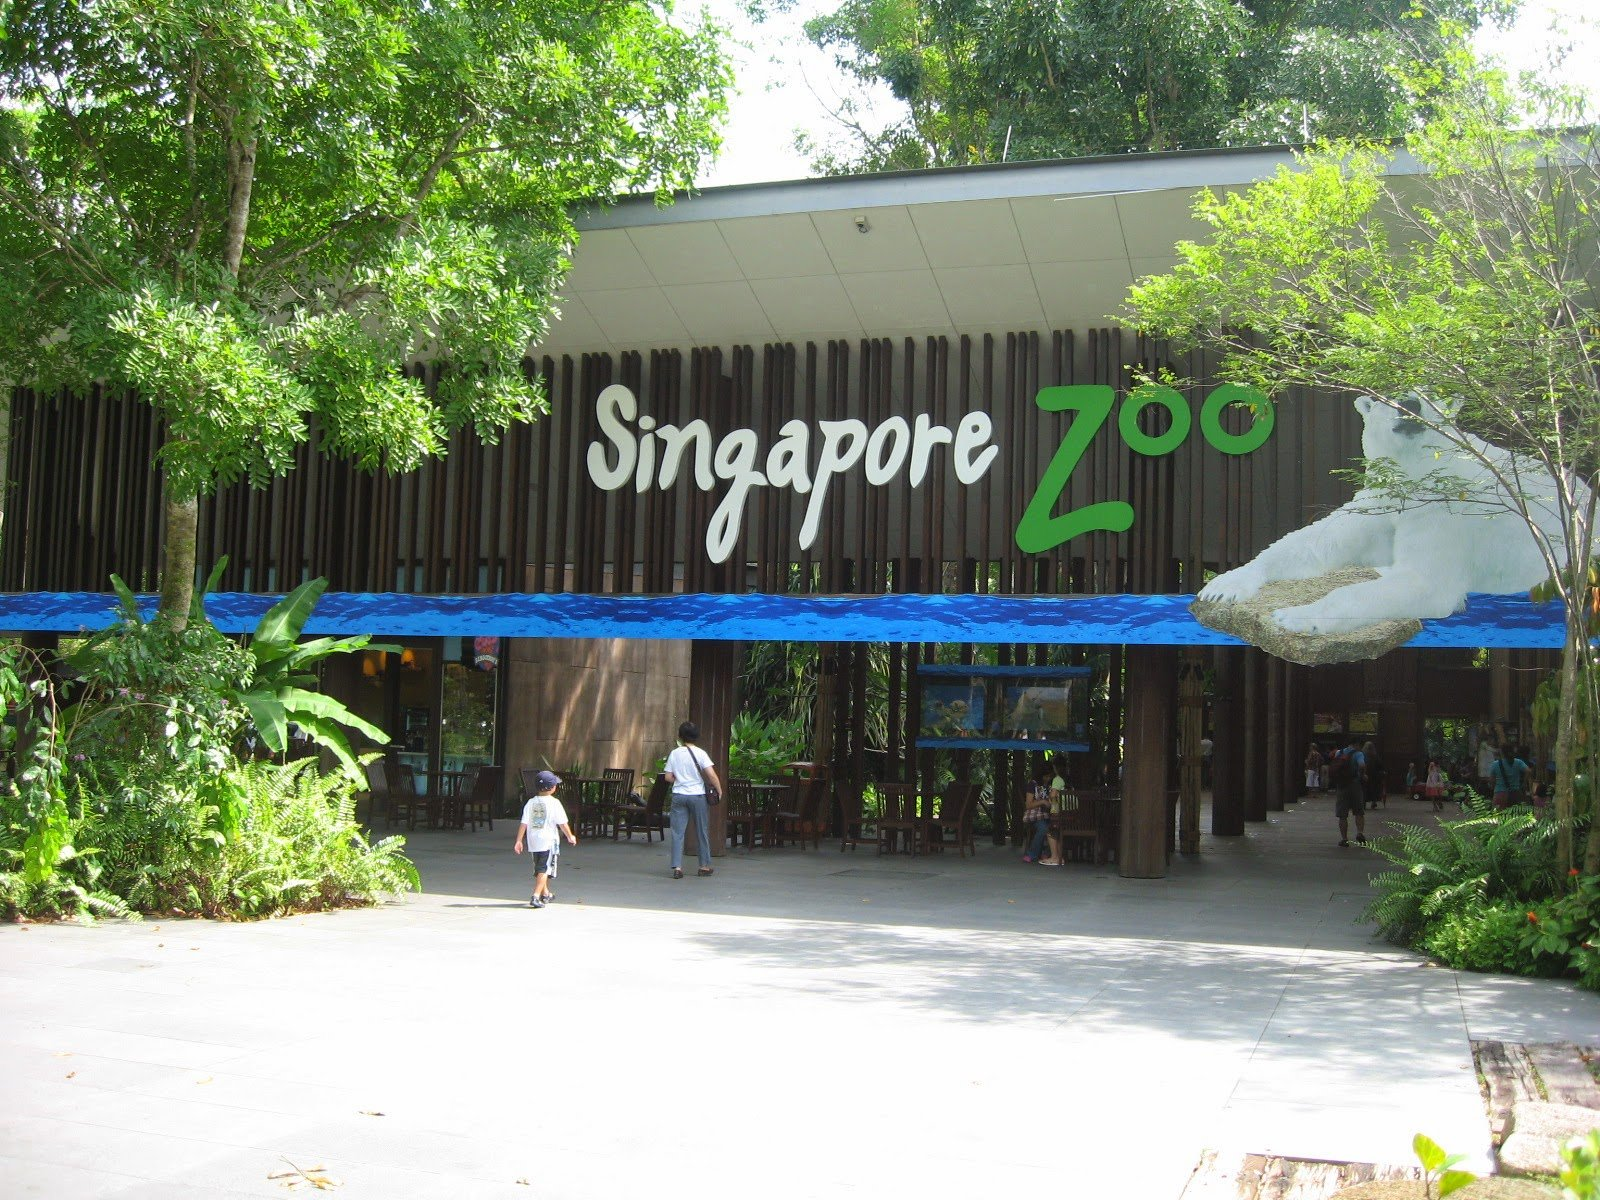 Singapore Zoo                                                                   Image Source: